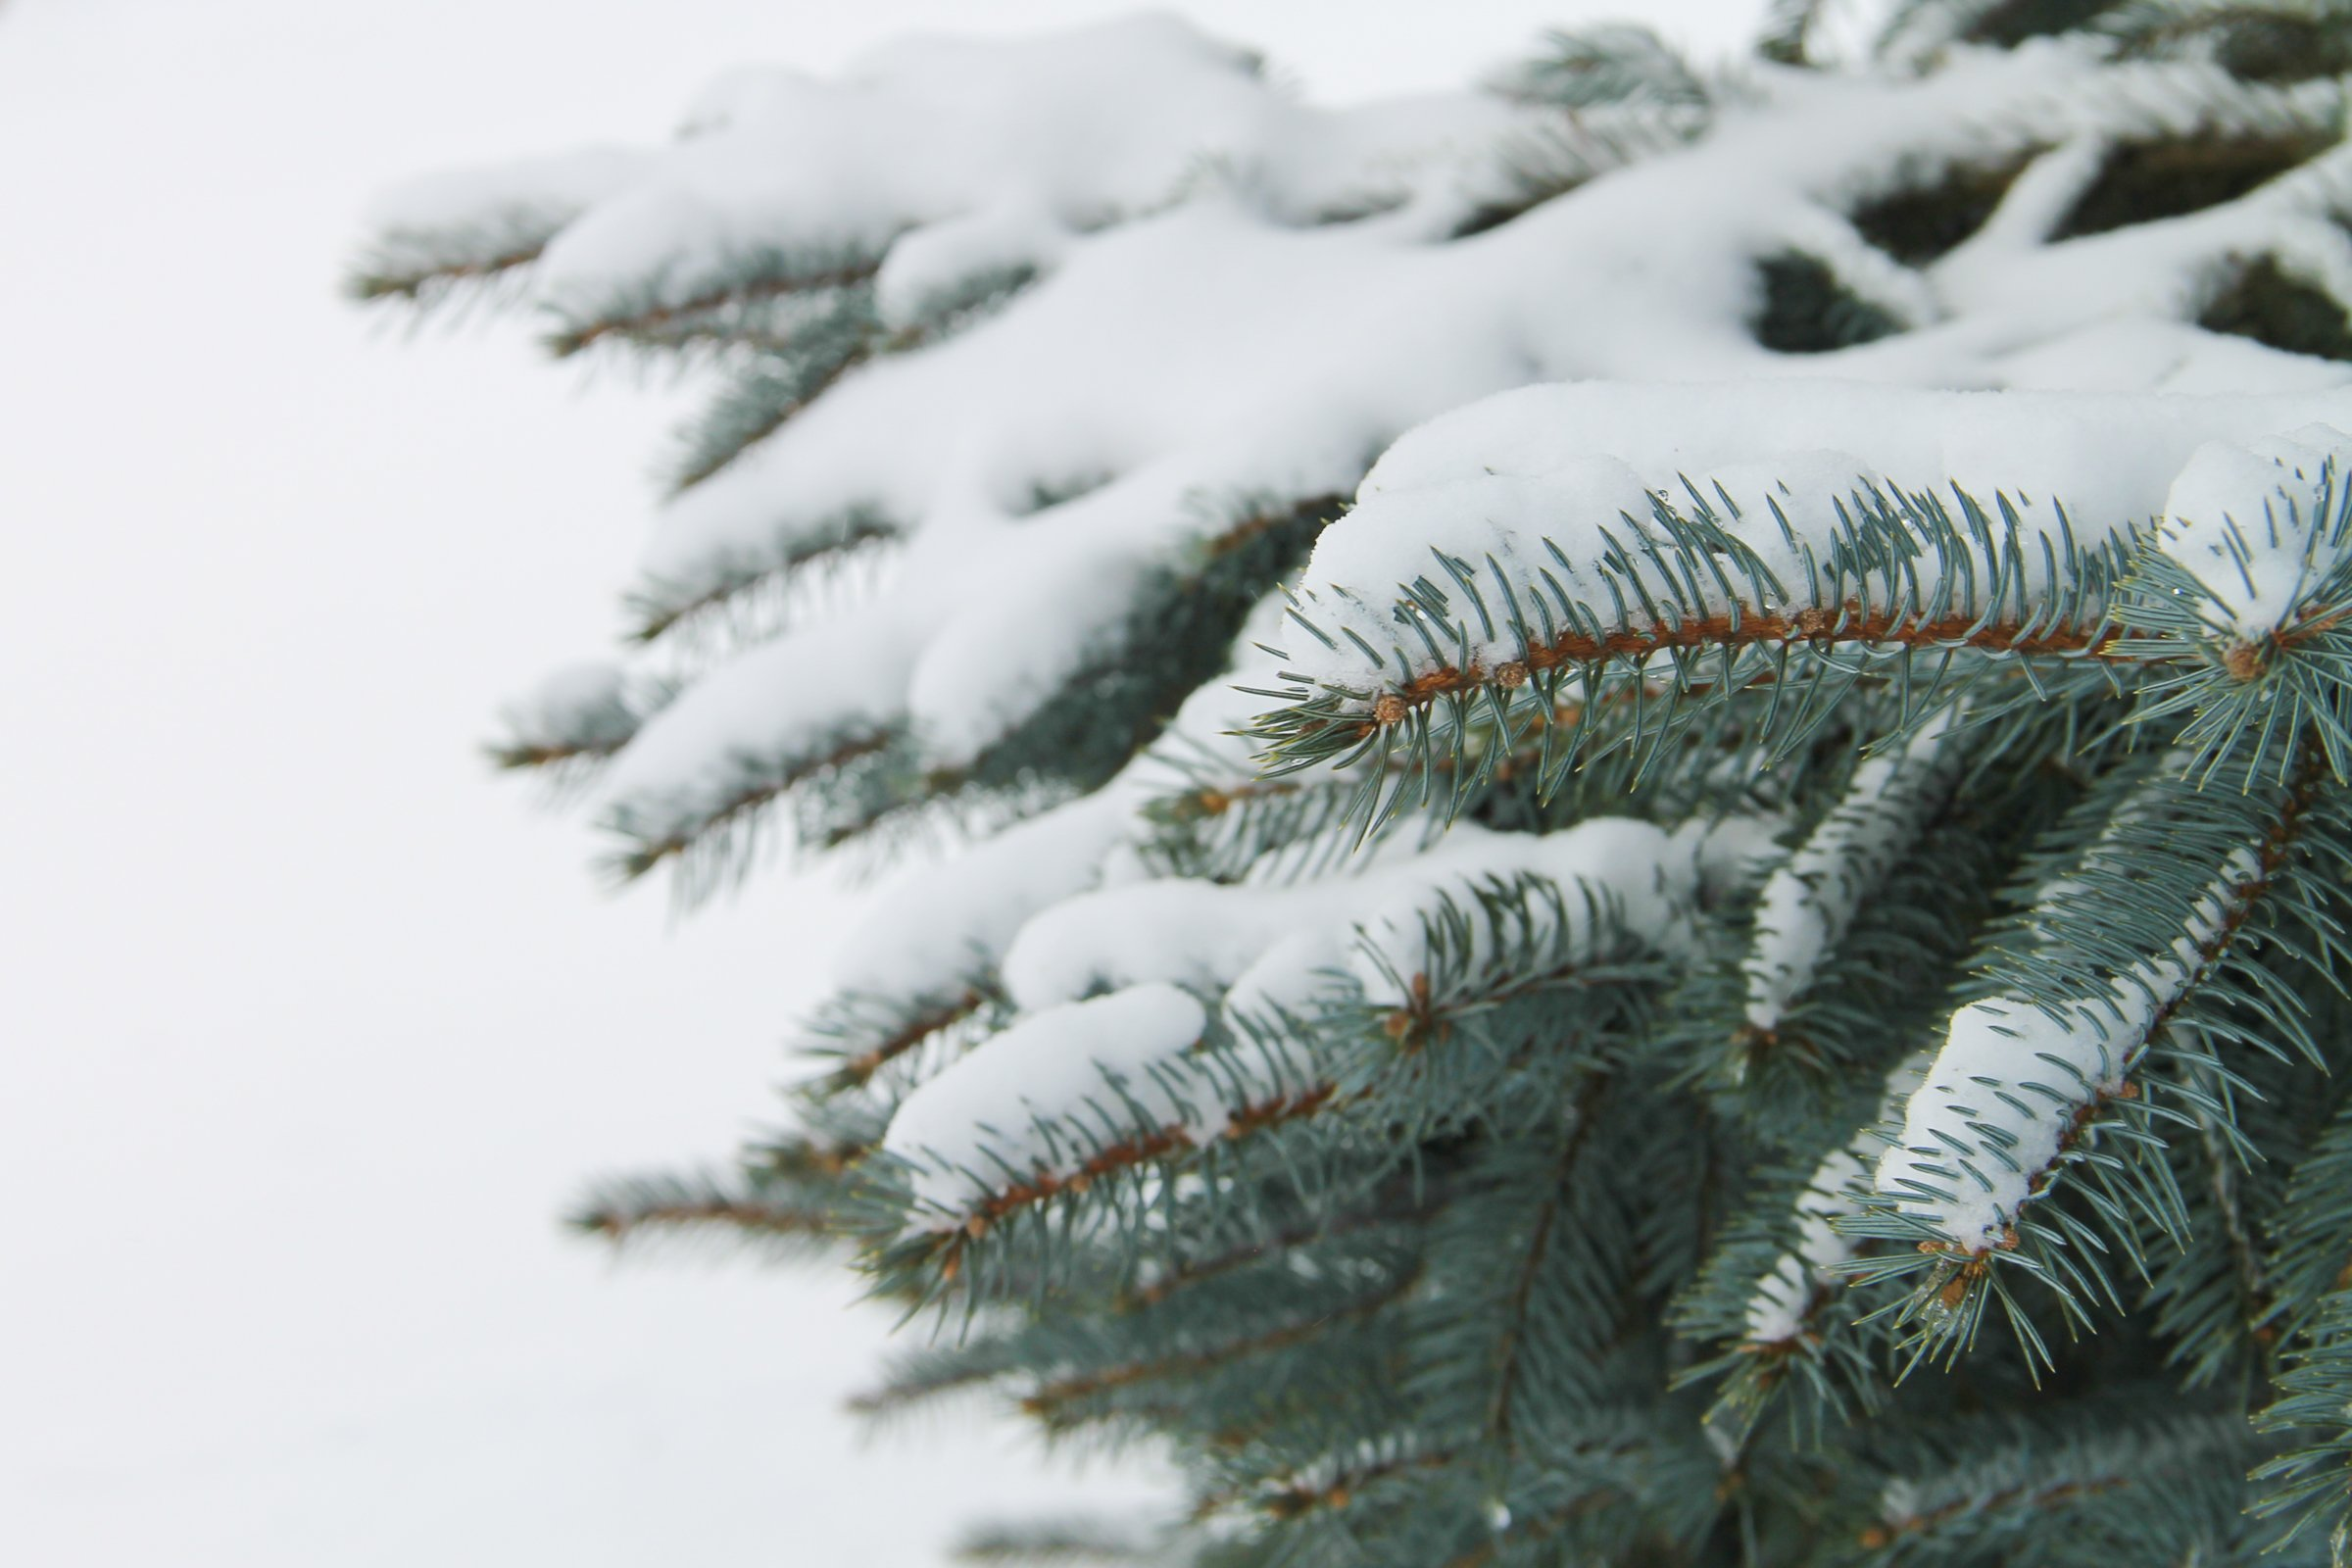 free stock photo of snow on pine tree branches